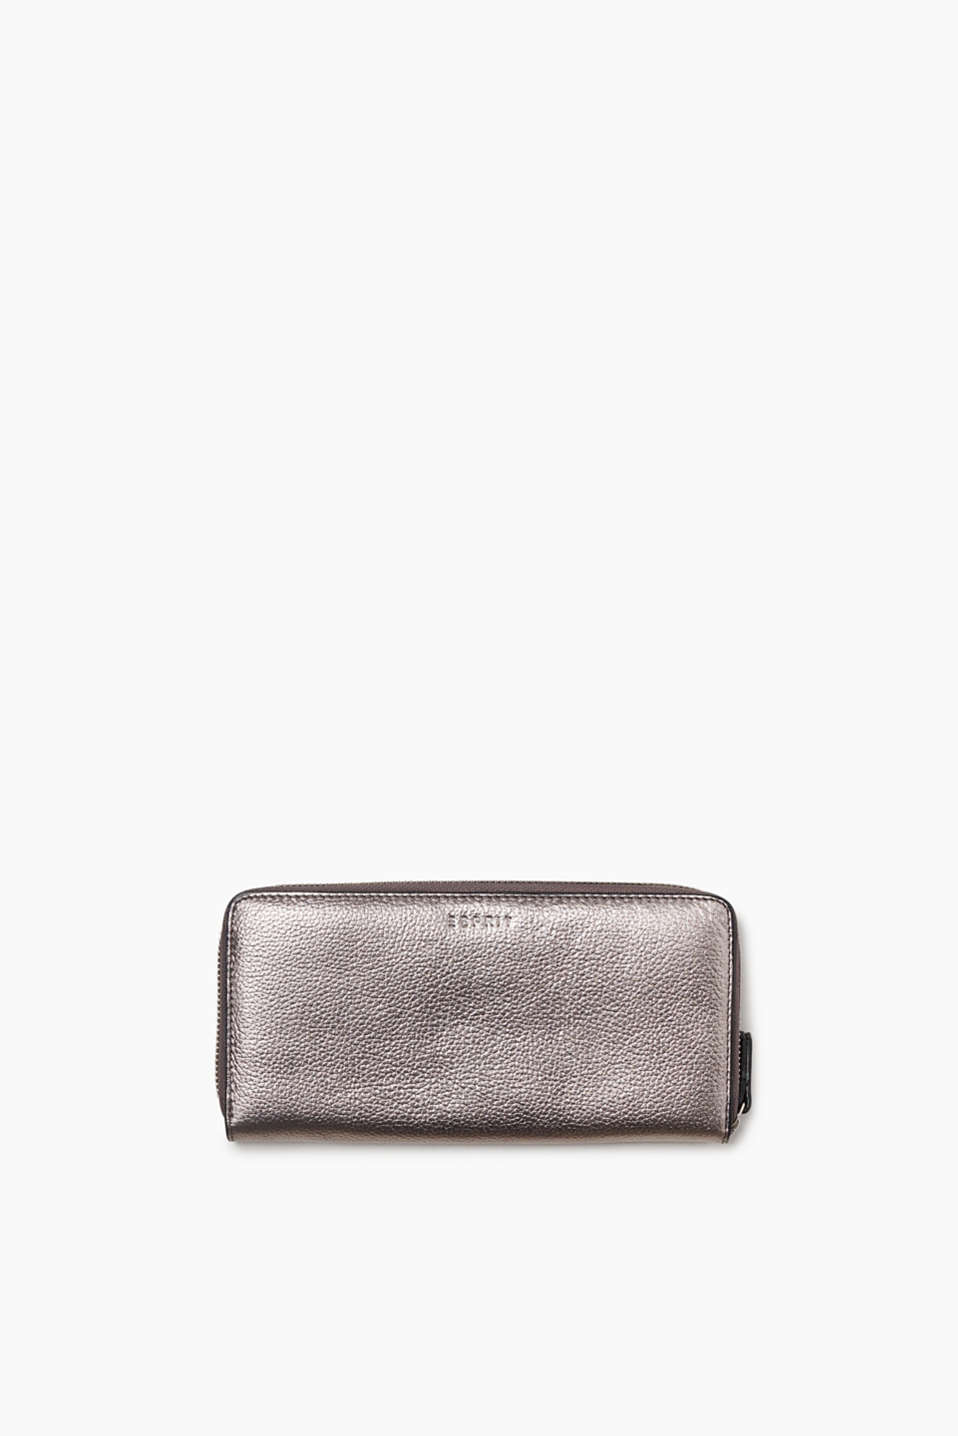 Purse in a waiter-style design with a zip made of finely grained cowhide